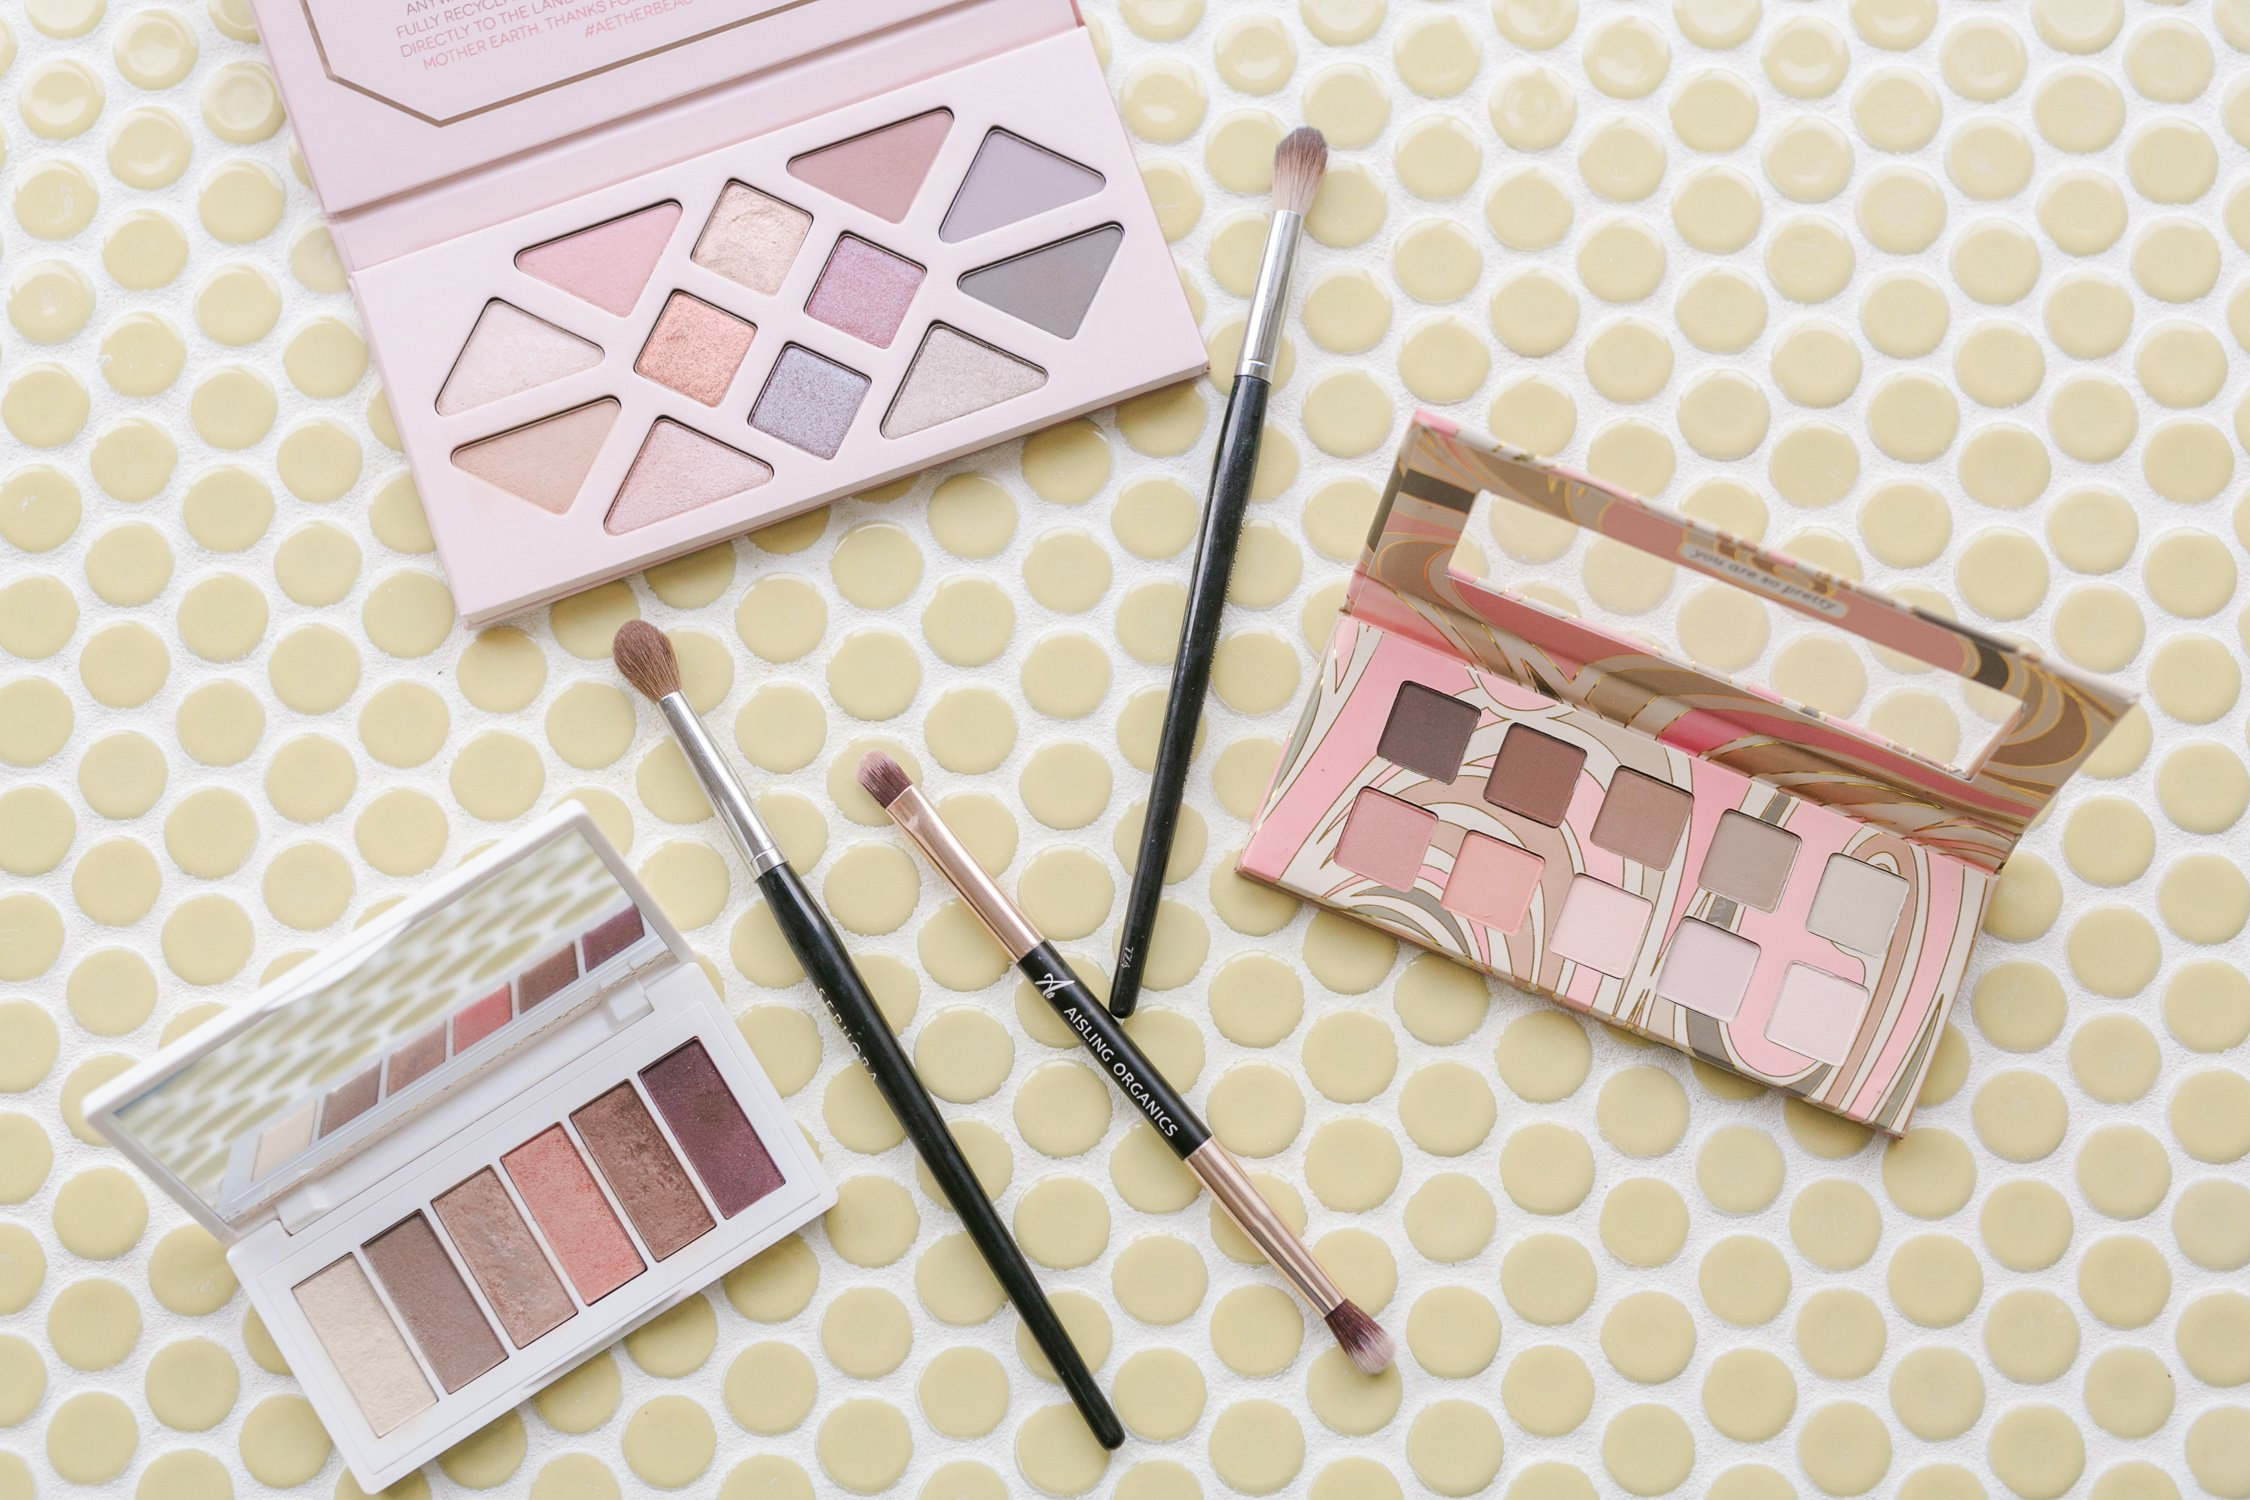 The Best (Clean) Eyeshadow Palettes for any Budget